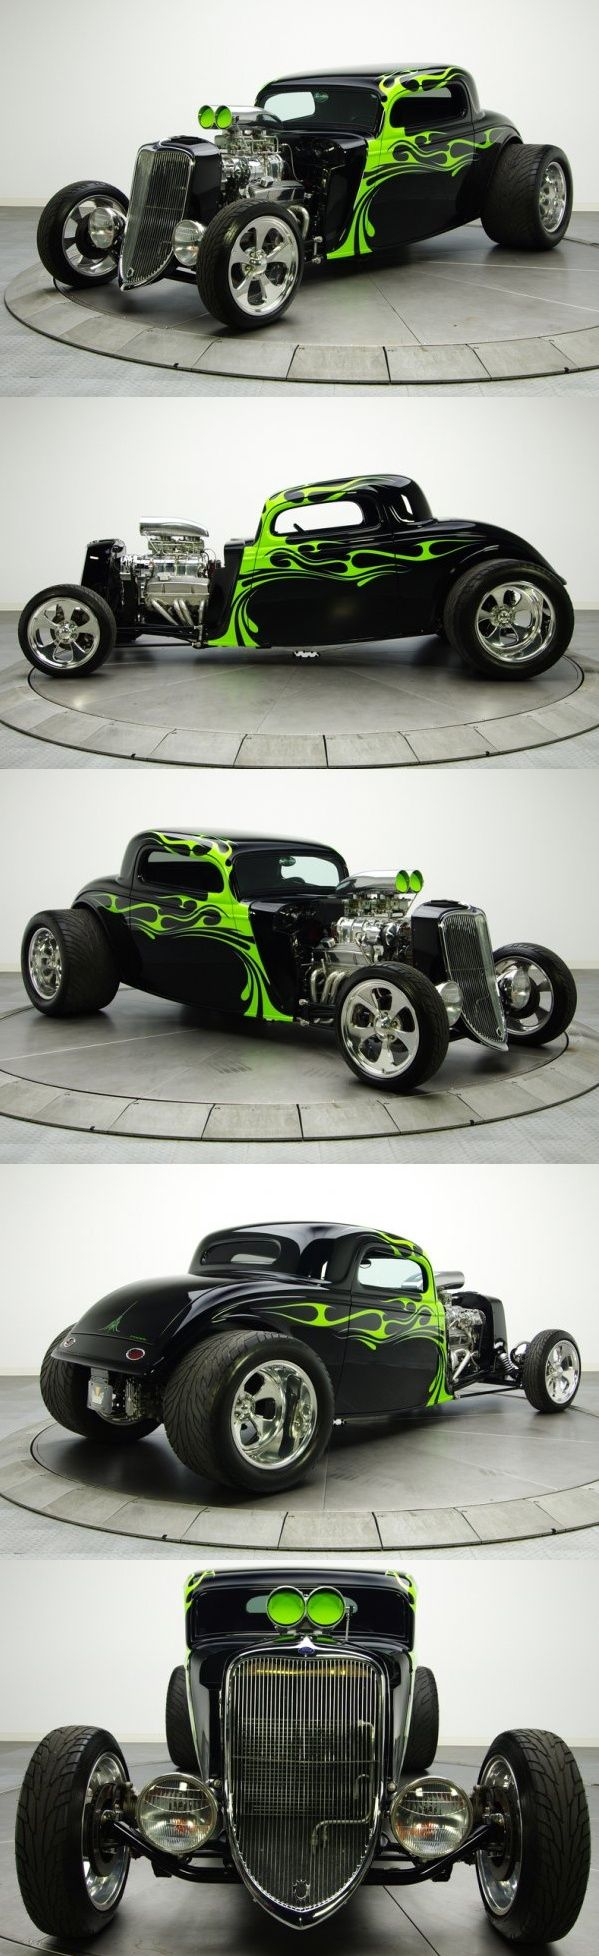 Tribal Green Flames ! amazing work (1934 Ford Coupe hot rod) The Green Flames make this rod, gives it a twisted attitude!